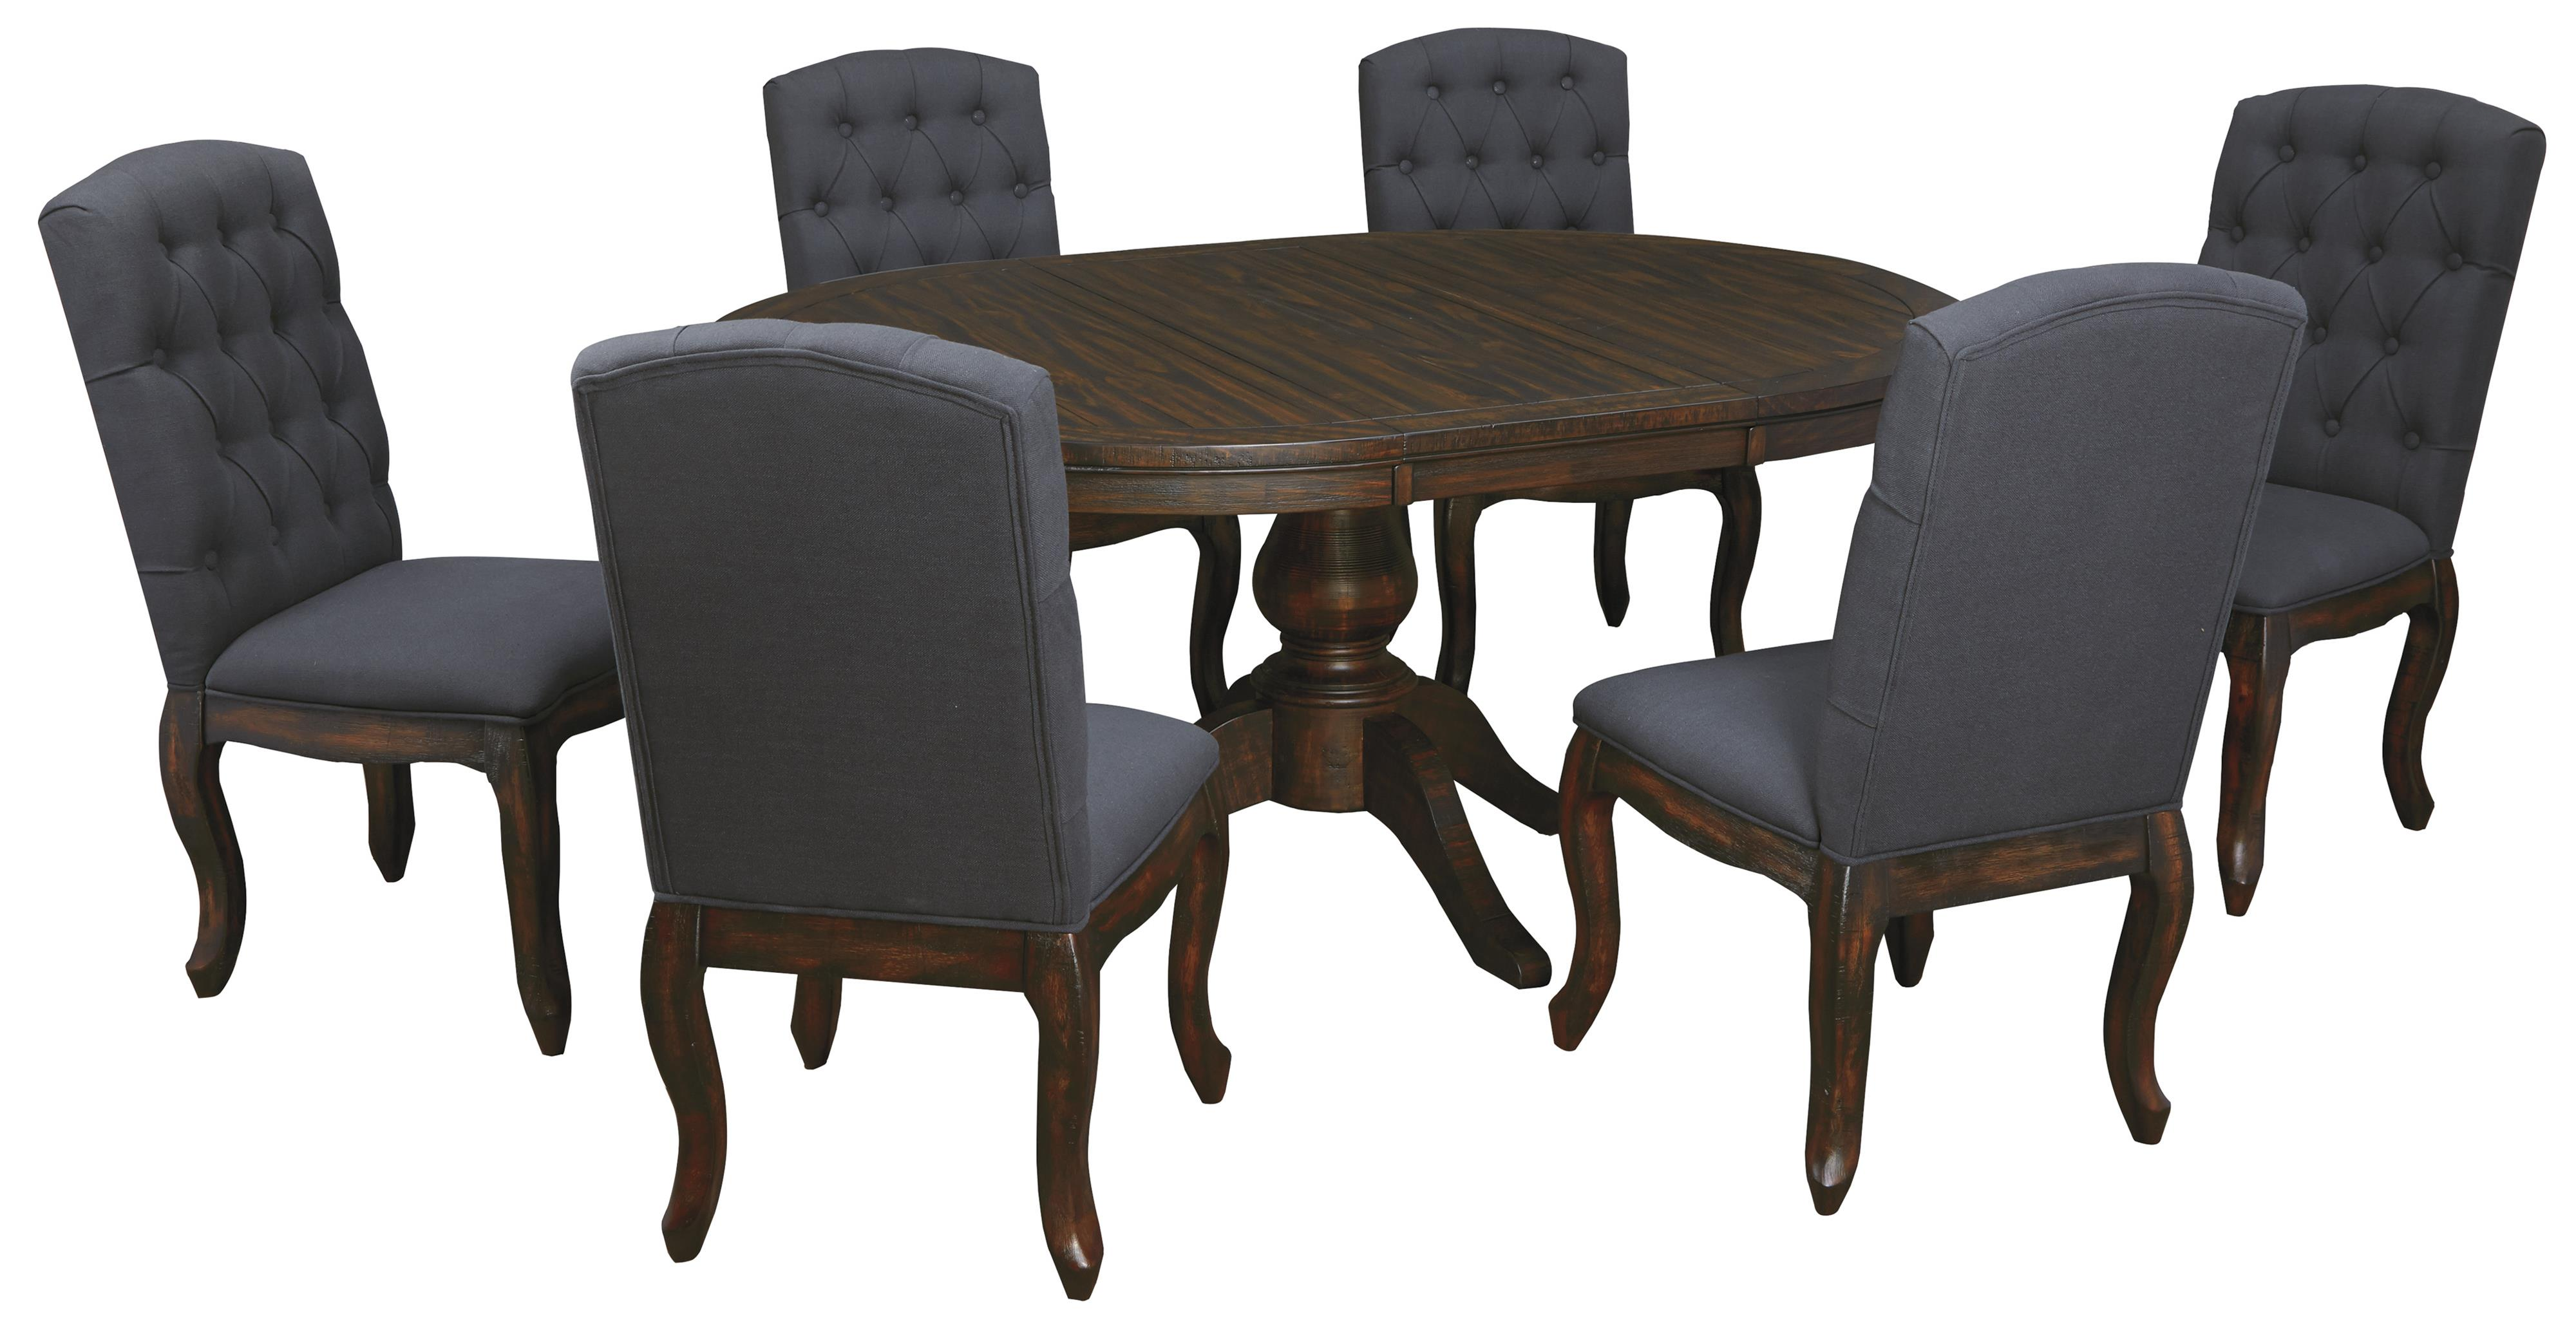 Signature design by ashley trudell 7 piece oval dining for Stahlwandbecken oval set